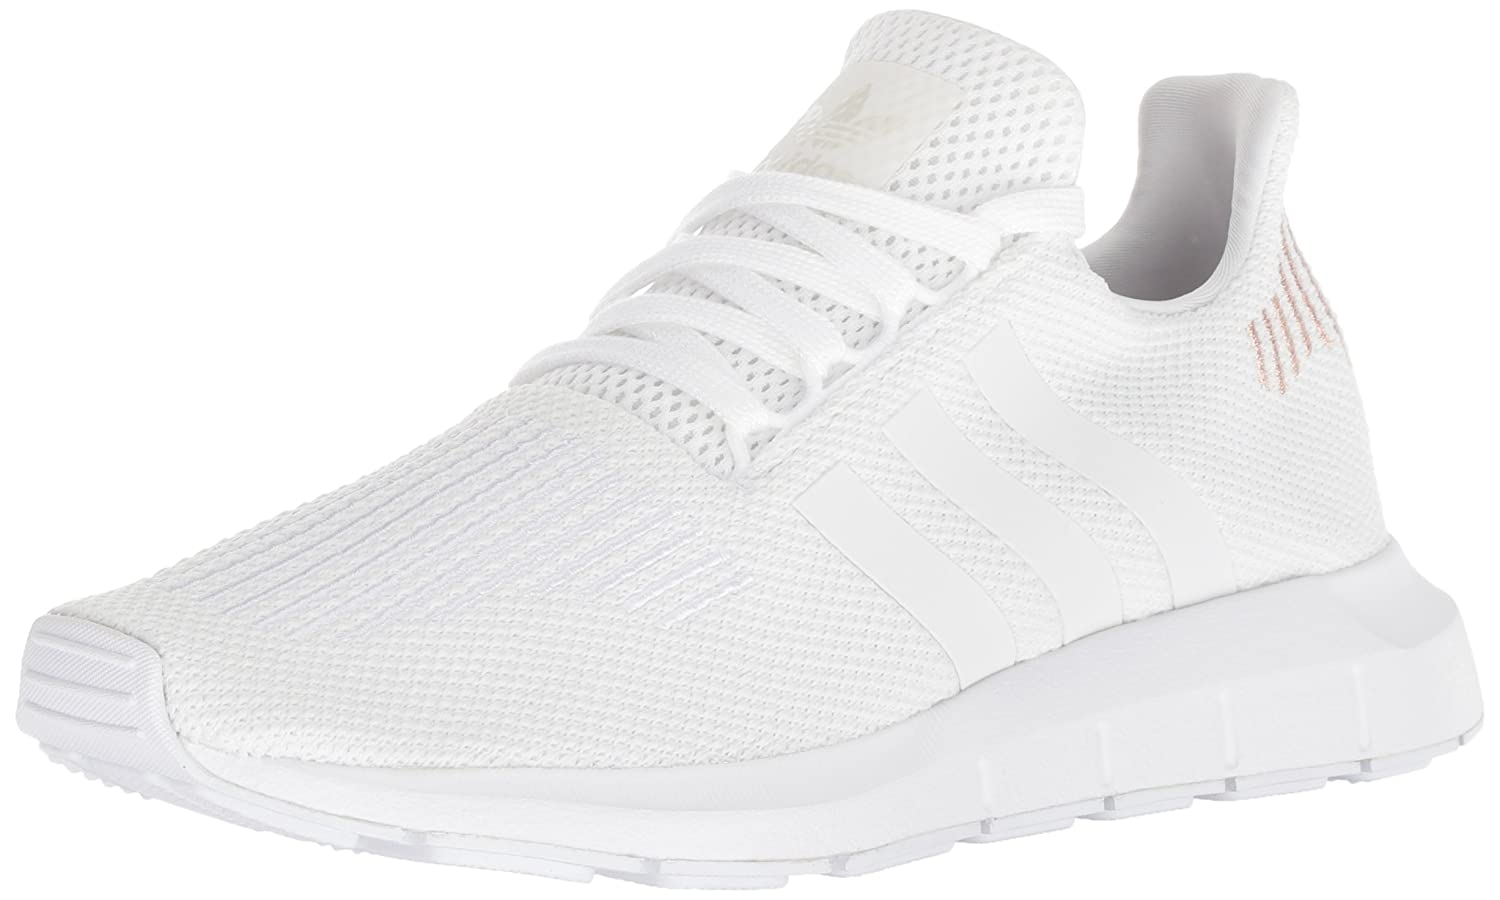 adidas Originals Women's Swift Running Shoe B077X933HH 7 M US|White/Crystal White/White